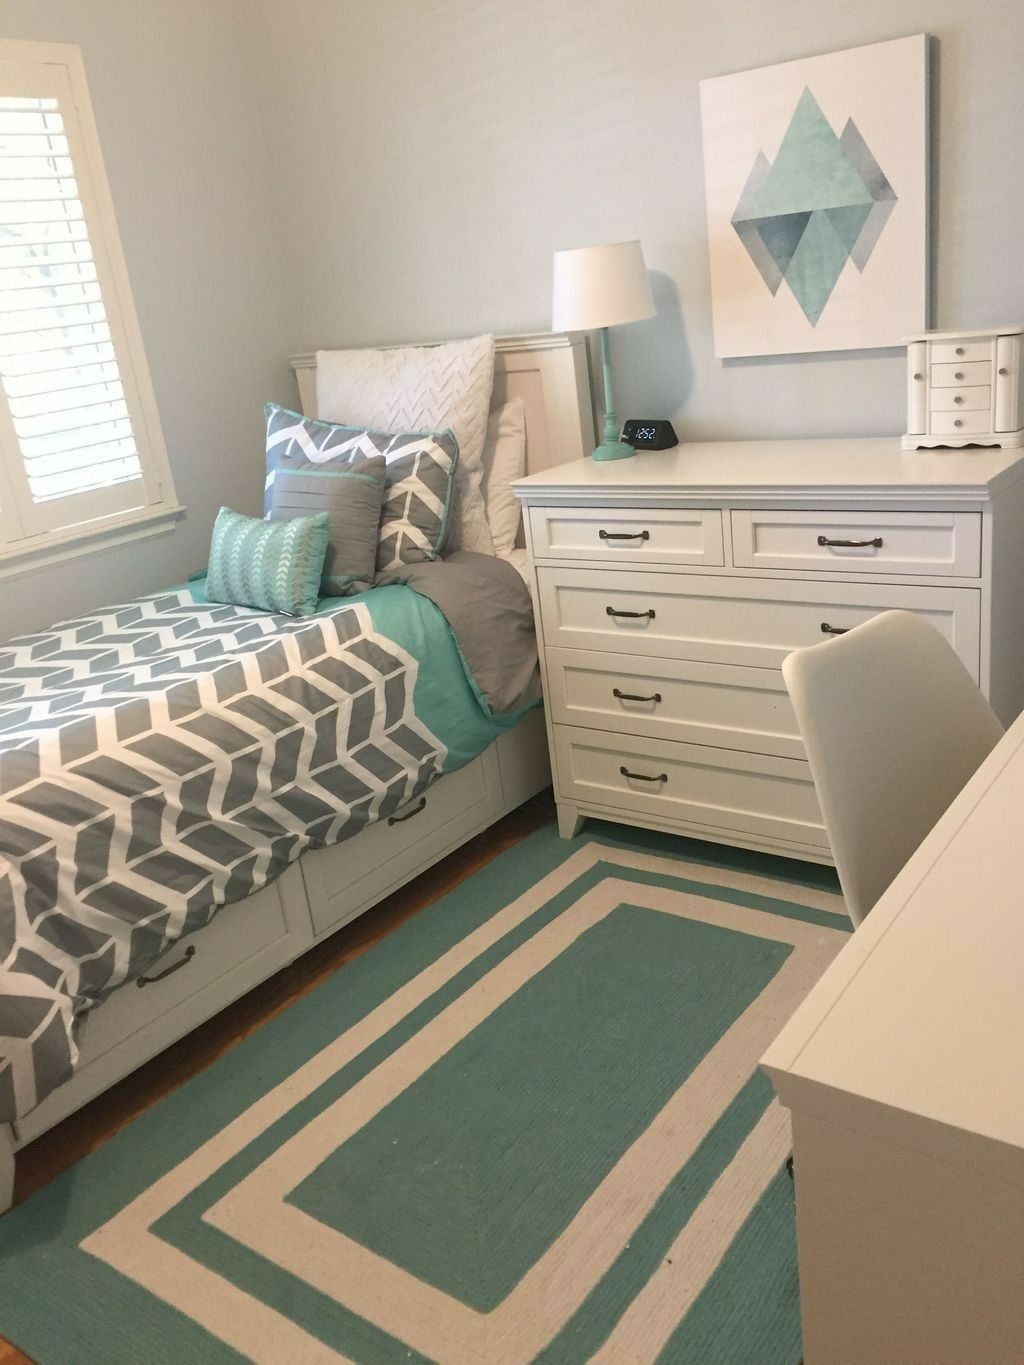 small bedroom, wooden floor, light green wall, white bed platform with drawers, white cabinet, green rug, white green table lamp, white table